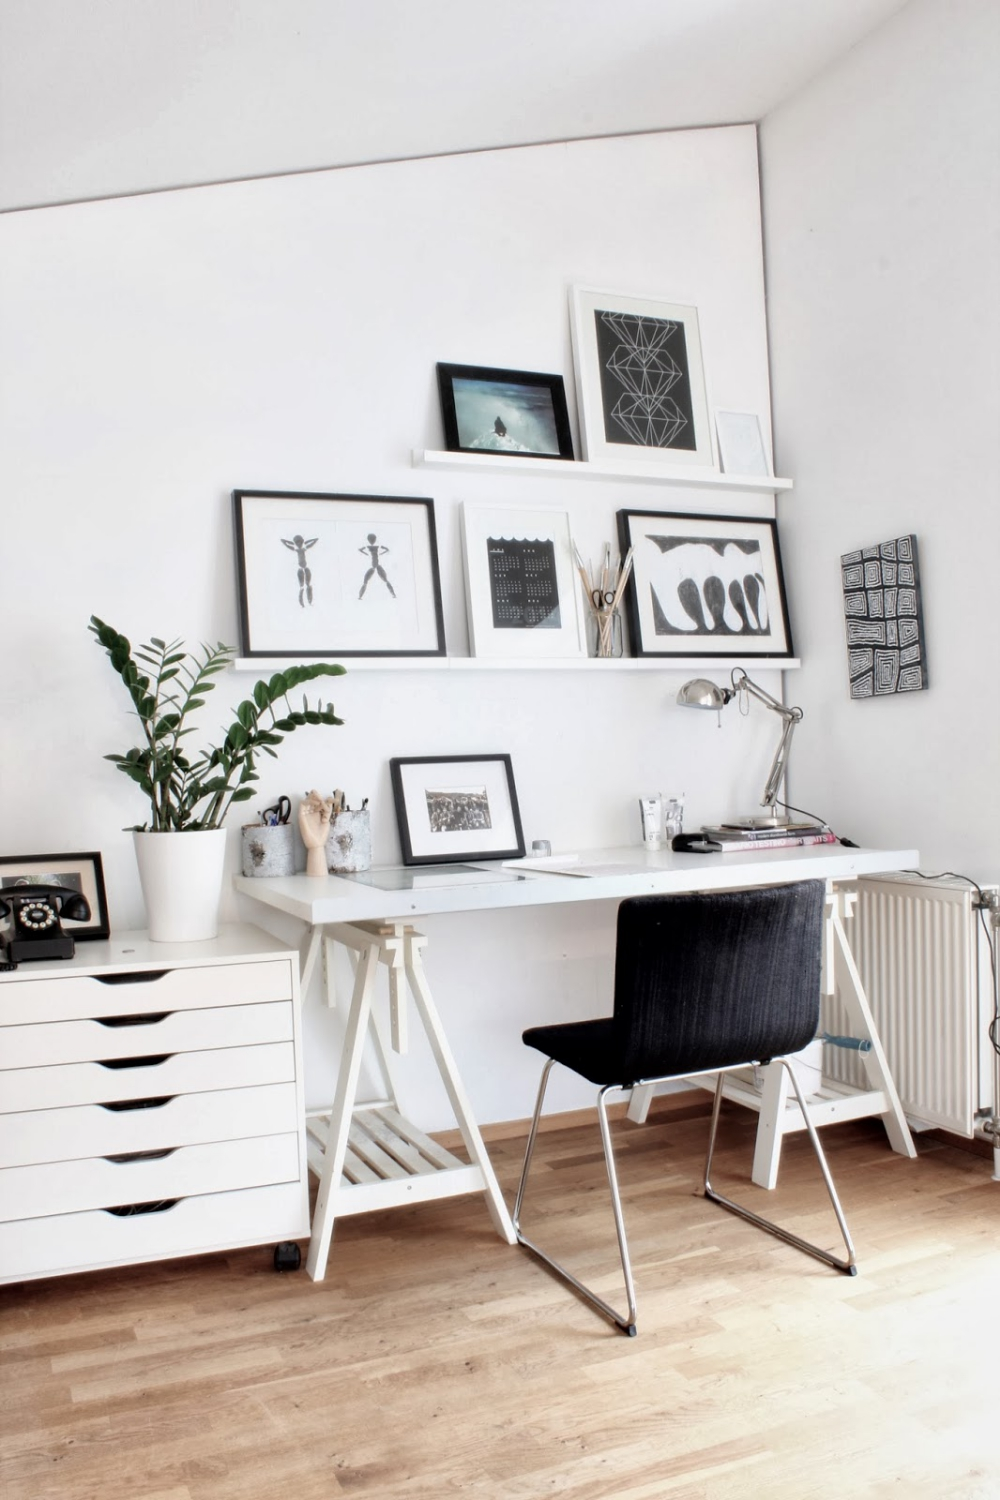 interior-exquisite-home-office-images-from-scandinavian-design-blogs-using-white-wooden-wall-shelves-and-a-silver-swing-arm-halogen-desk-lamp-also-with-a-rectangular-white-wooden-desk-and-black-stacki.jpg